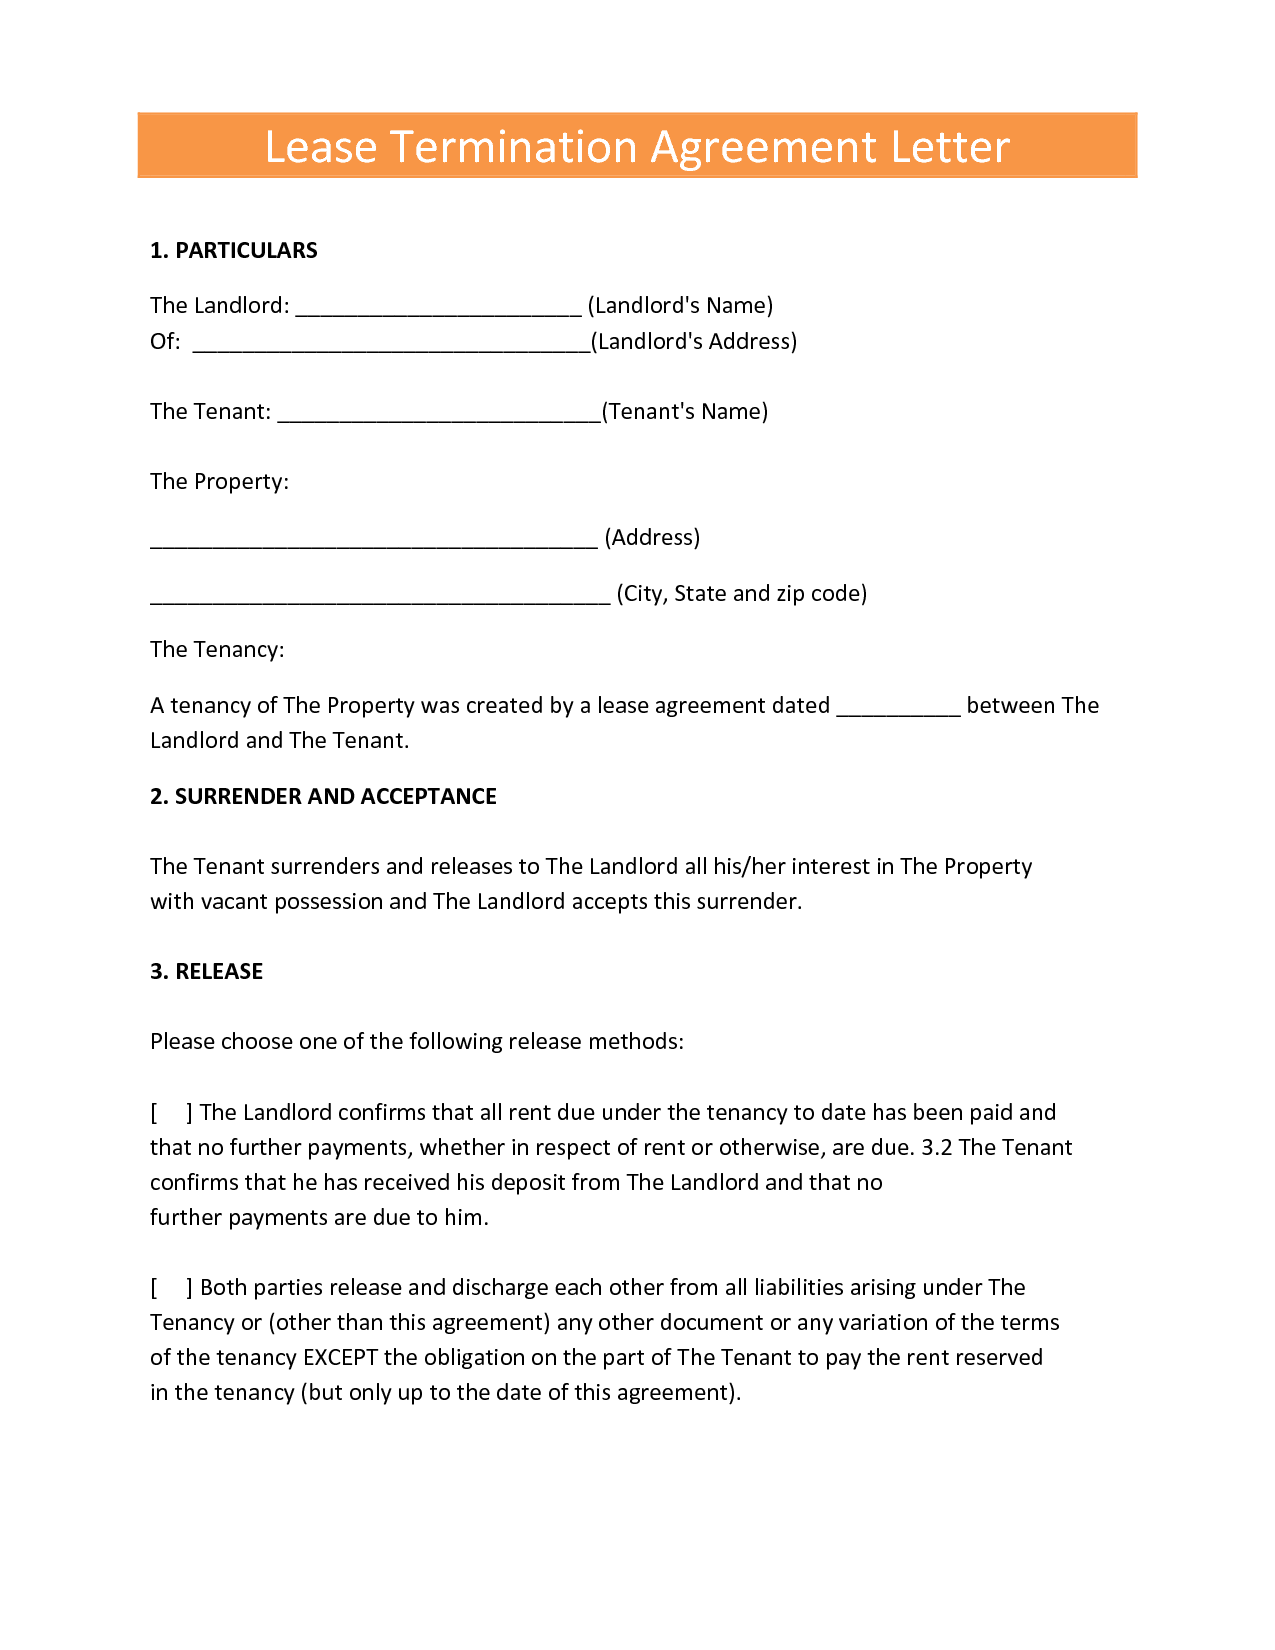 Lease termination agreement letter by elfir61807 cover latter lease termination agreement letter by elfir61807 spiritdancerdesigns